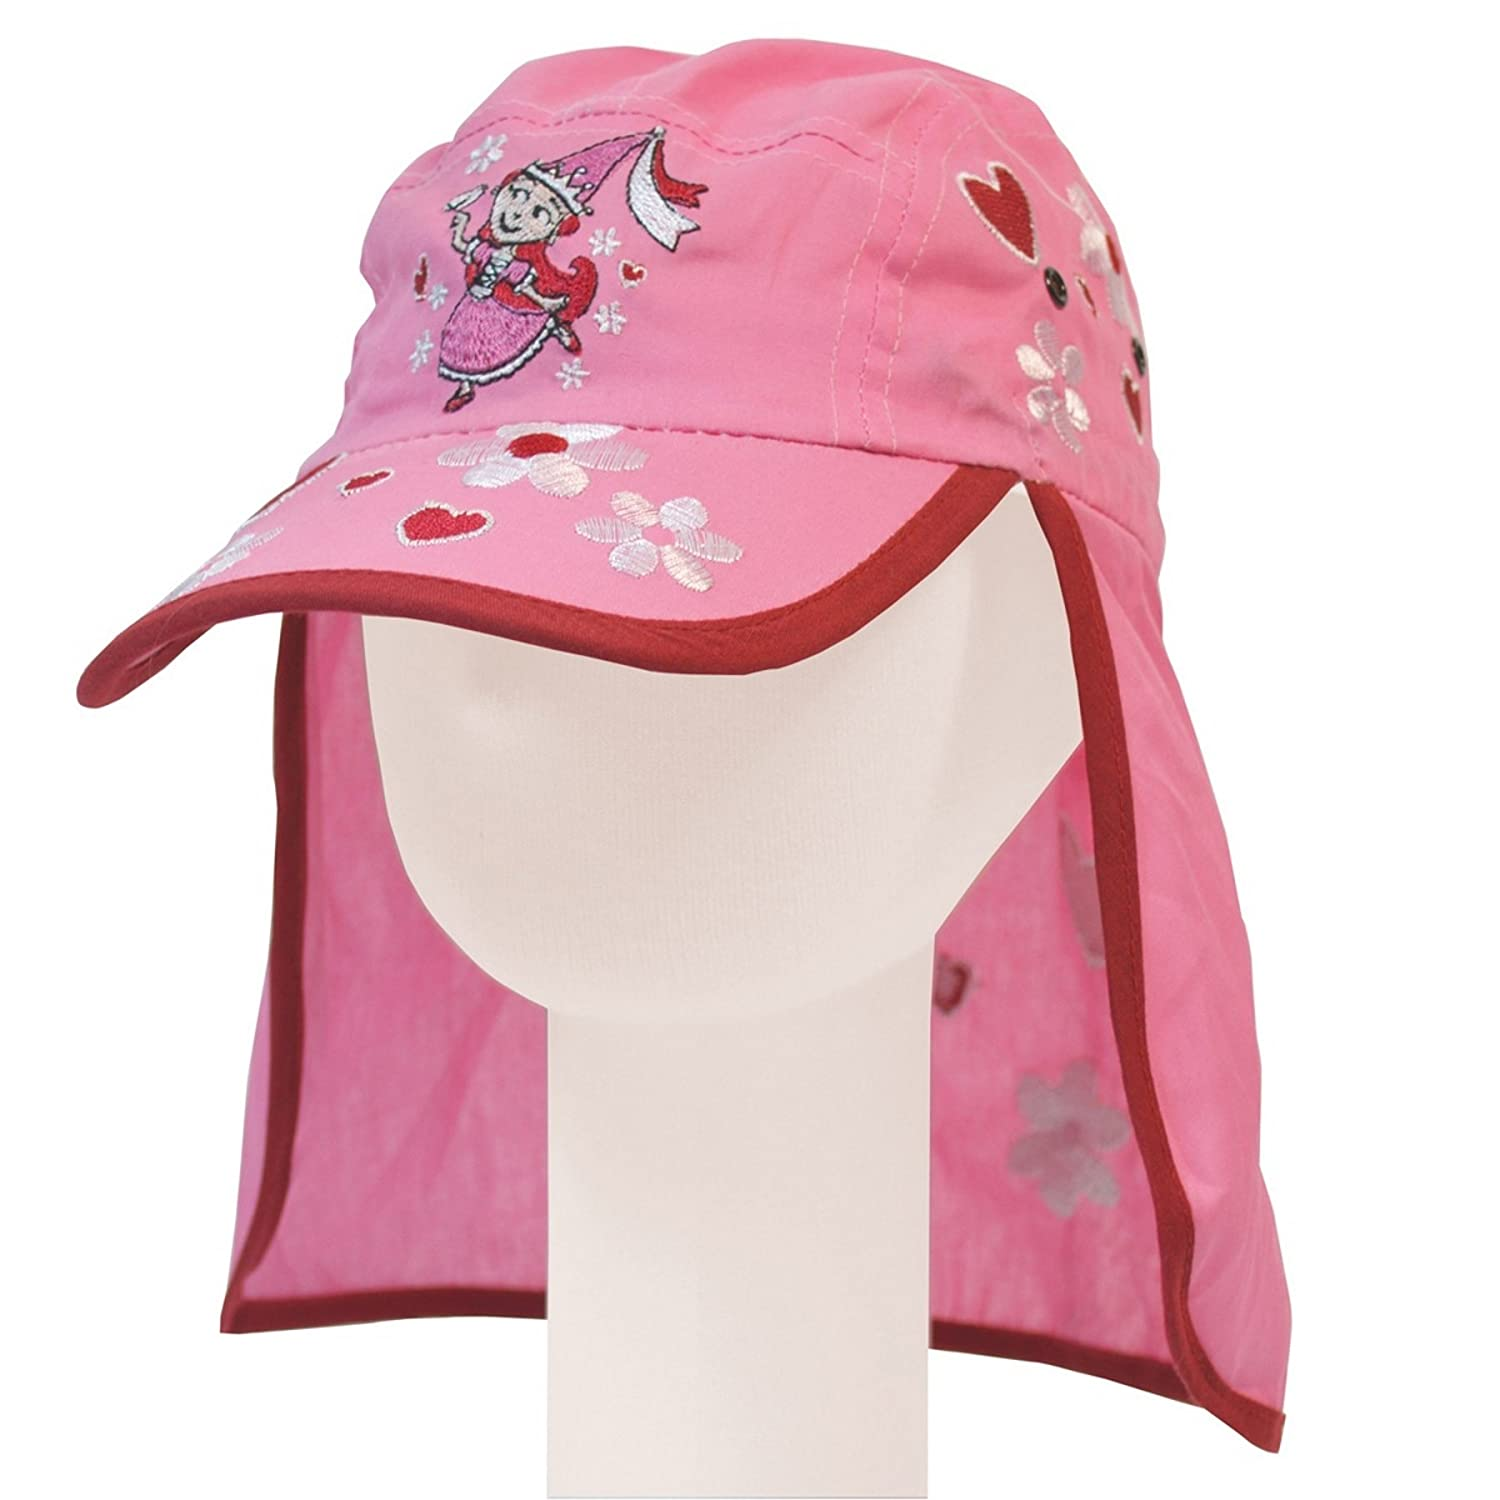 bcd515e61 Bugzz Princess Legionnaires Sun Hat One Size fits 3-6 years